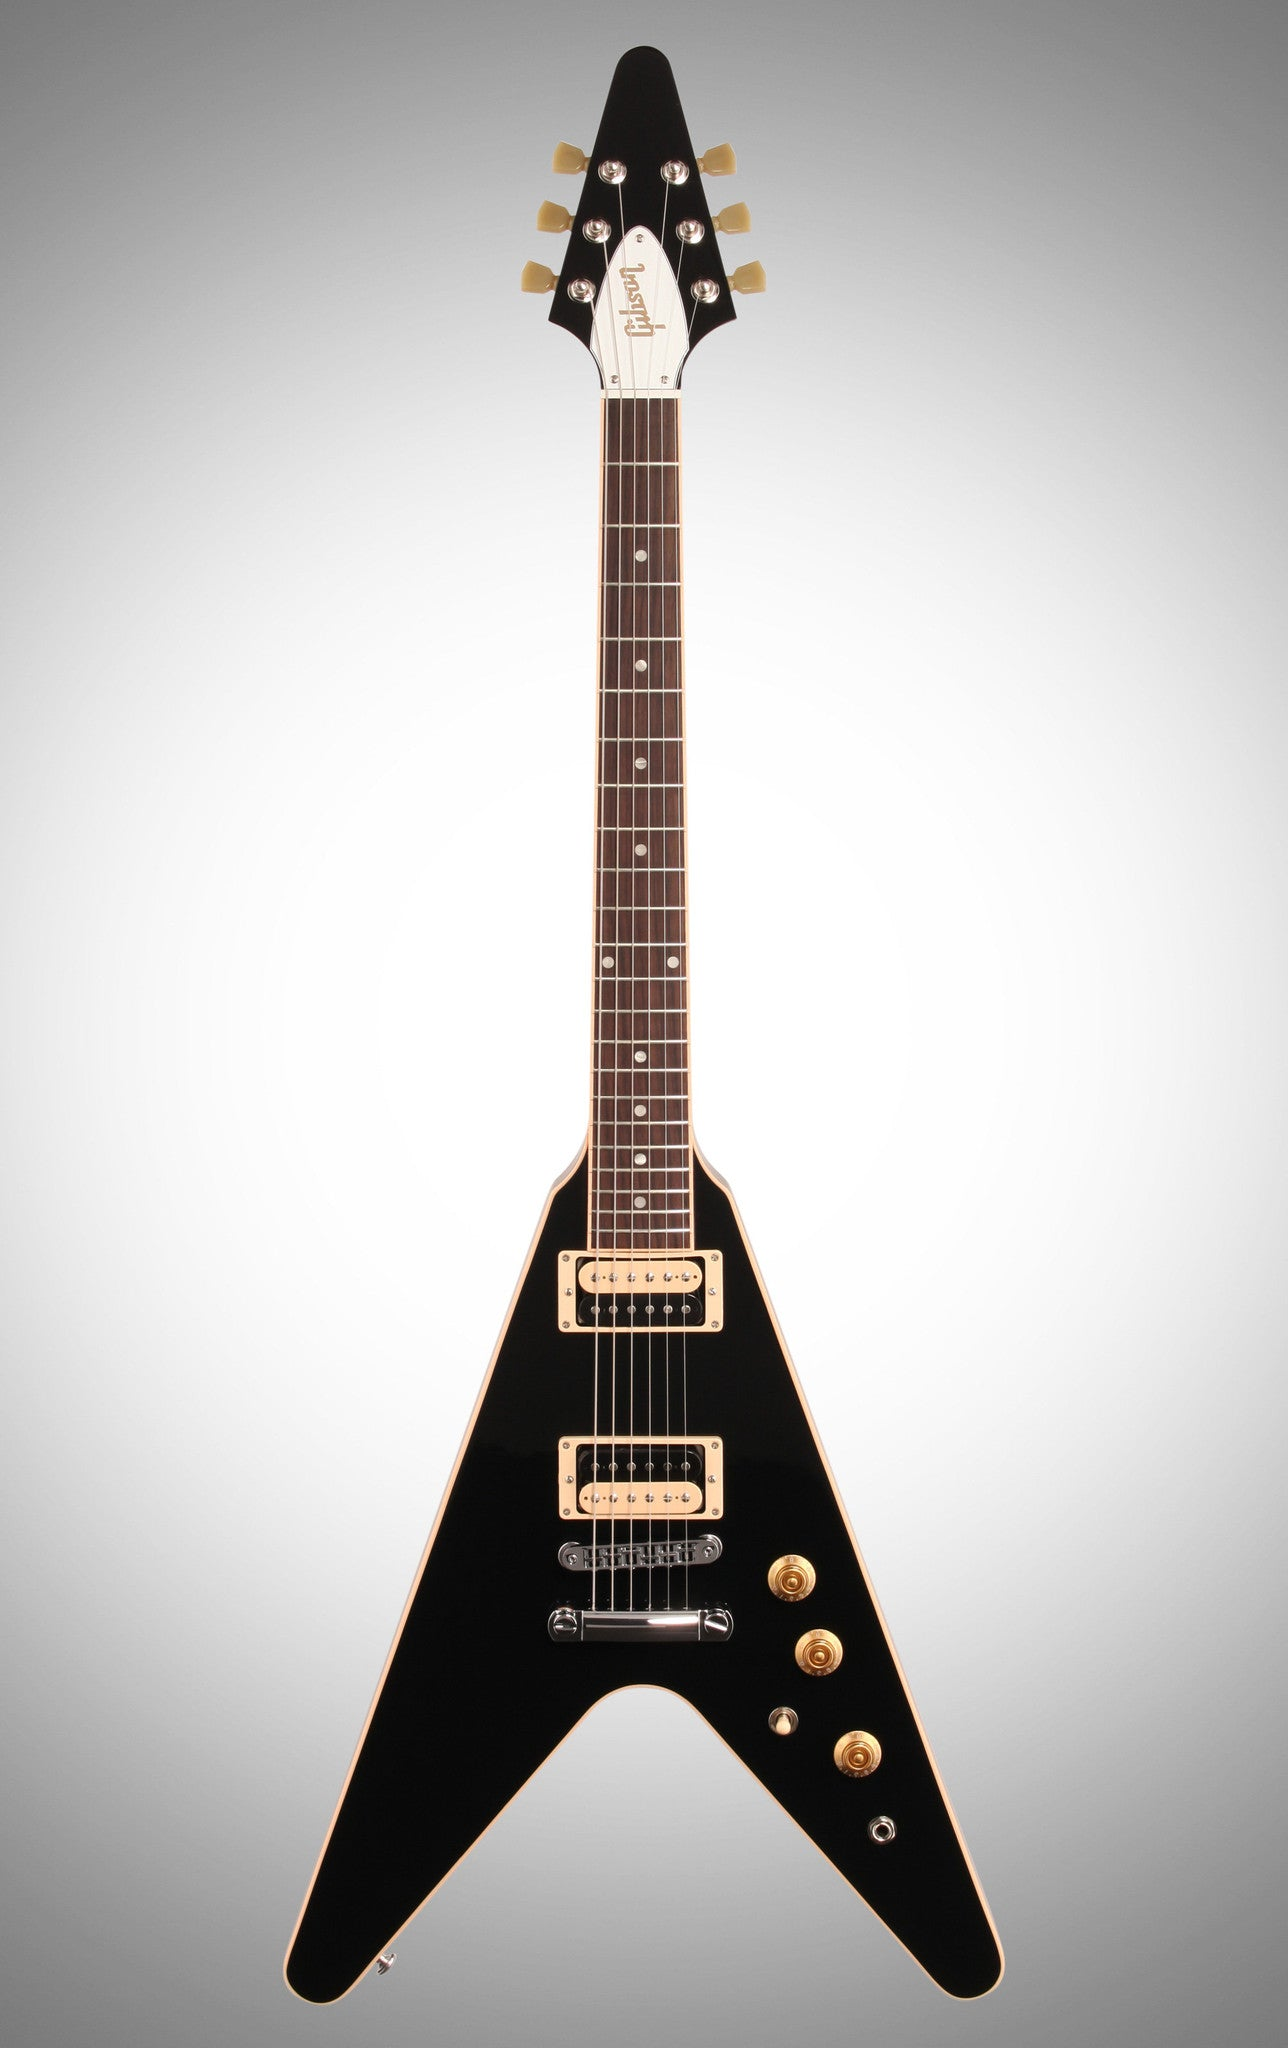 Gibson 2016 Flying V Pro T Electric Guitar (with Gig Bag), Ebony Gibson - HIENDGUITAR.COM